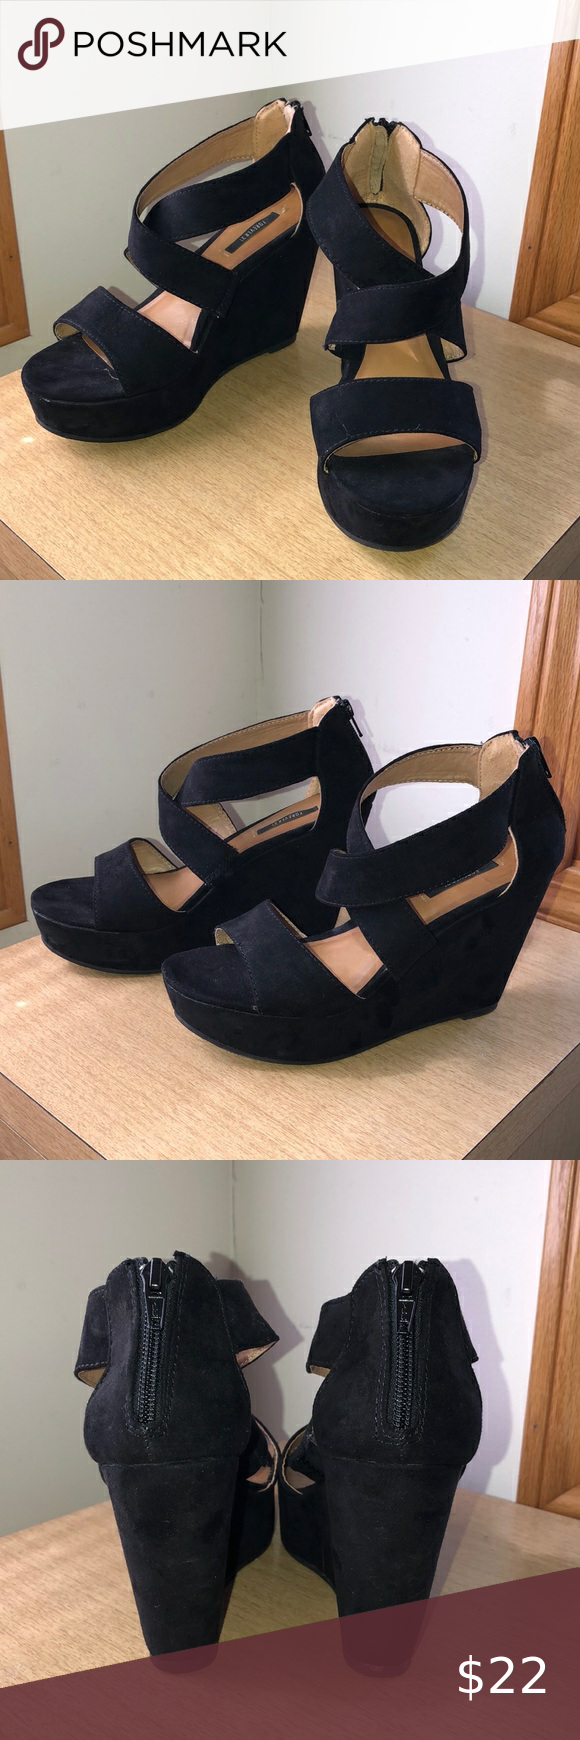 Forever 21 Black Suede Wedges Brand: Forever 21 Type: Wedges Size: Women 7 1/2 Color: Black Material: Faux suede Wedge height: See photo Details: Black suede, crisscross strap detail, zippered back closure *In good, used condition — some minor buffing (only worn once), still in very wearable, cute condition Forever 21 Shoes Wedges